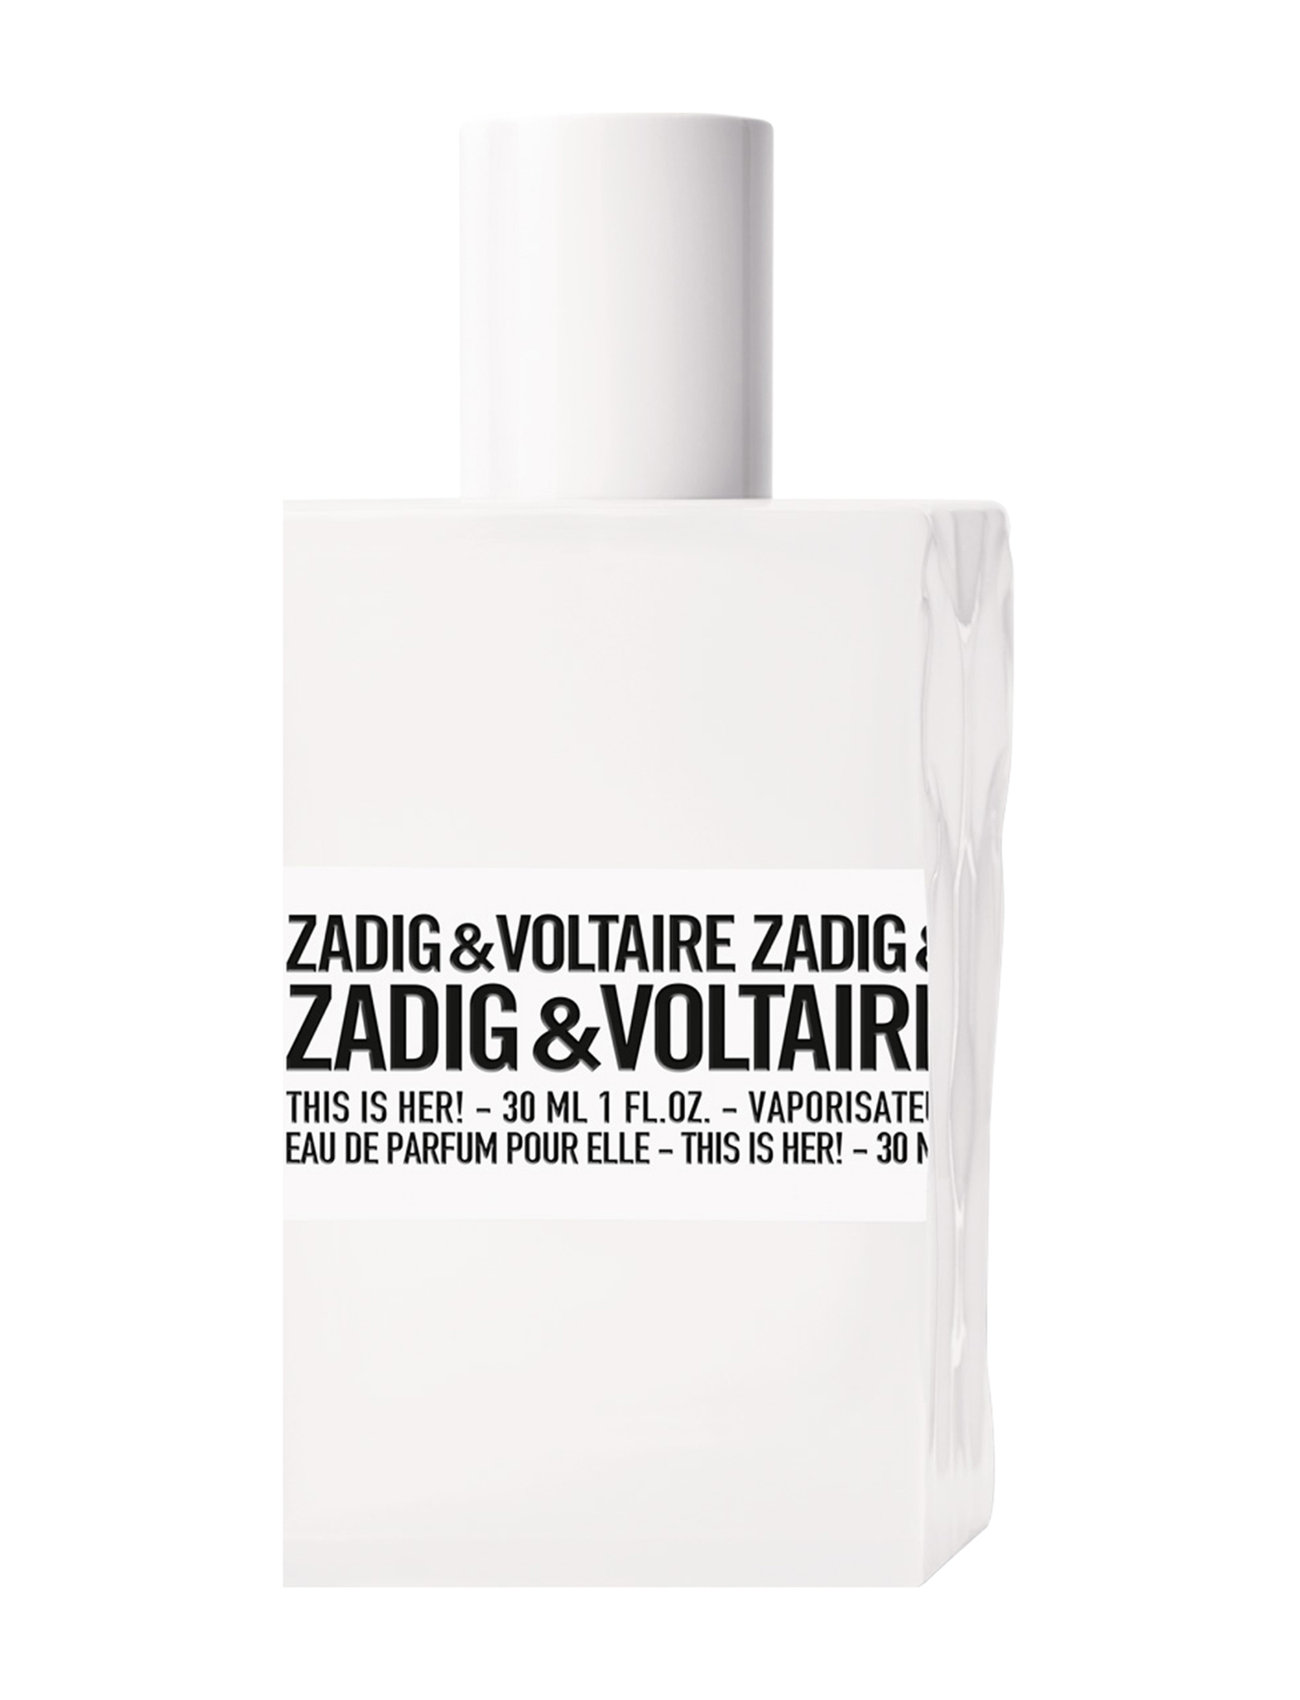 Zadig & Voltaire Fragrance THIS IS HER! EAU DE PARFUM